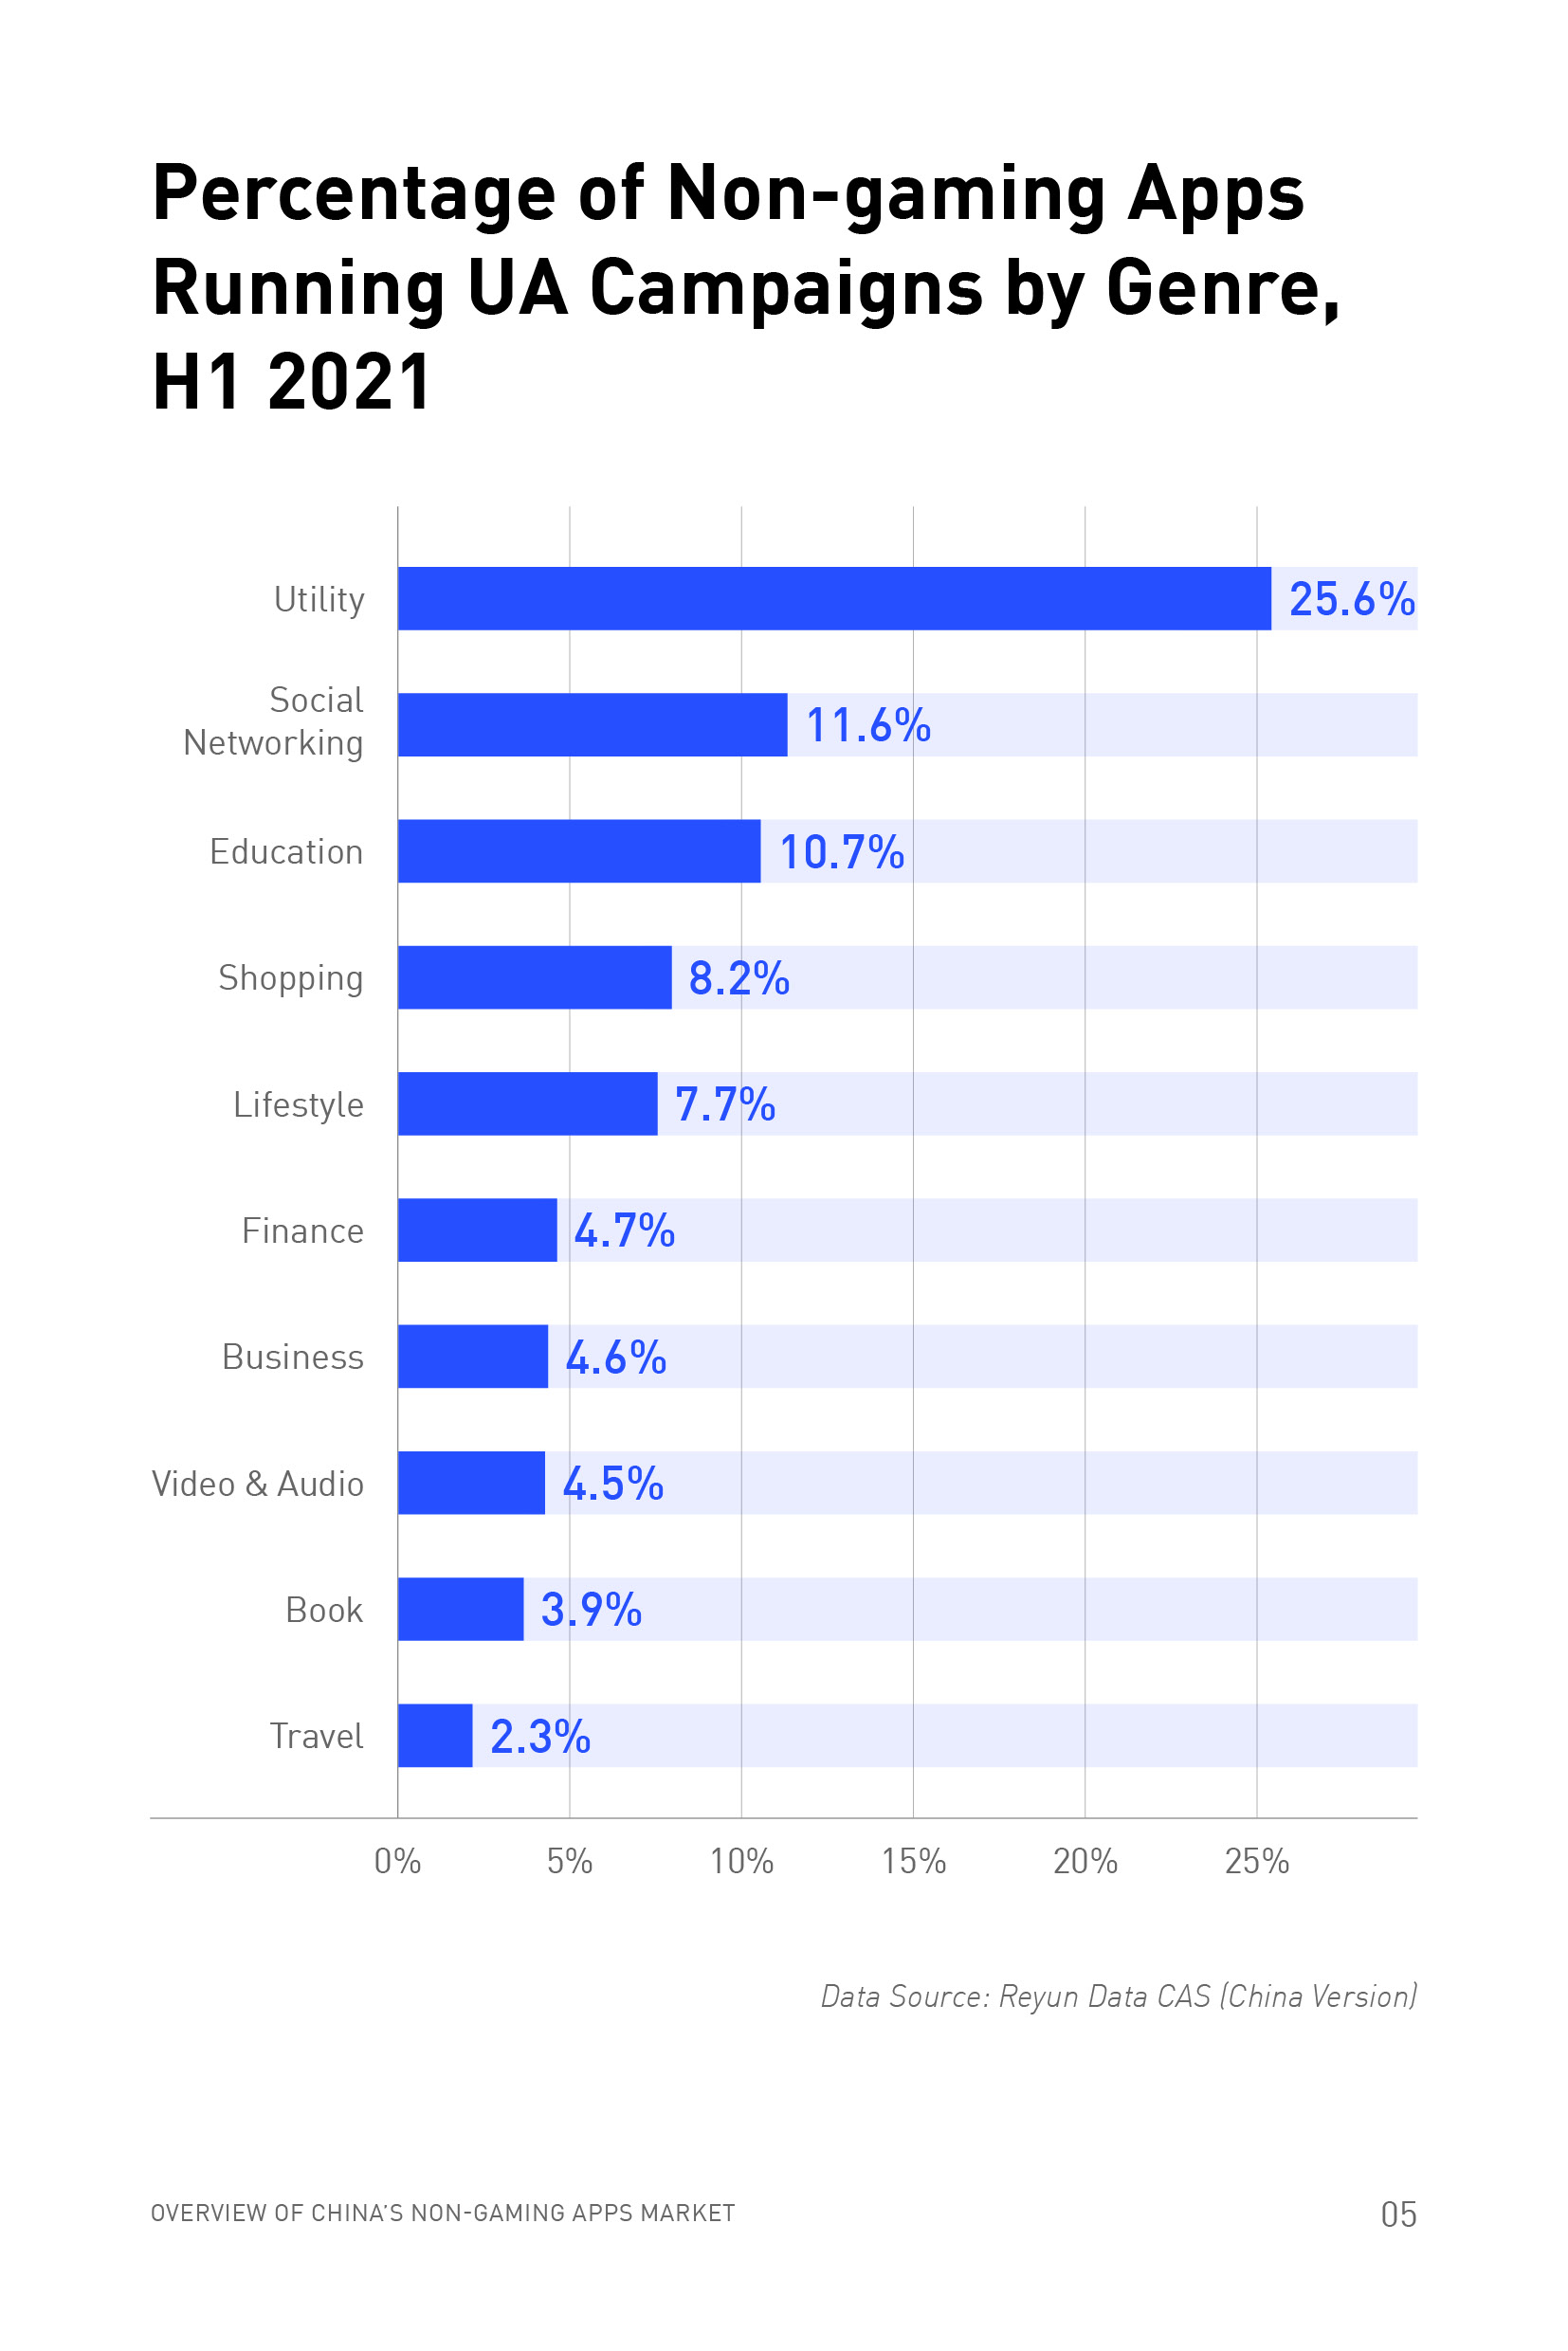 China Non-gaming App Trends Report H1 2021: How Developers Improved User Acquisition During The Pandemic